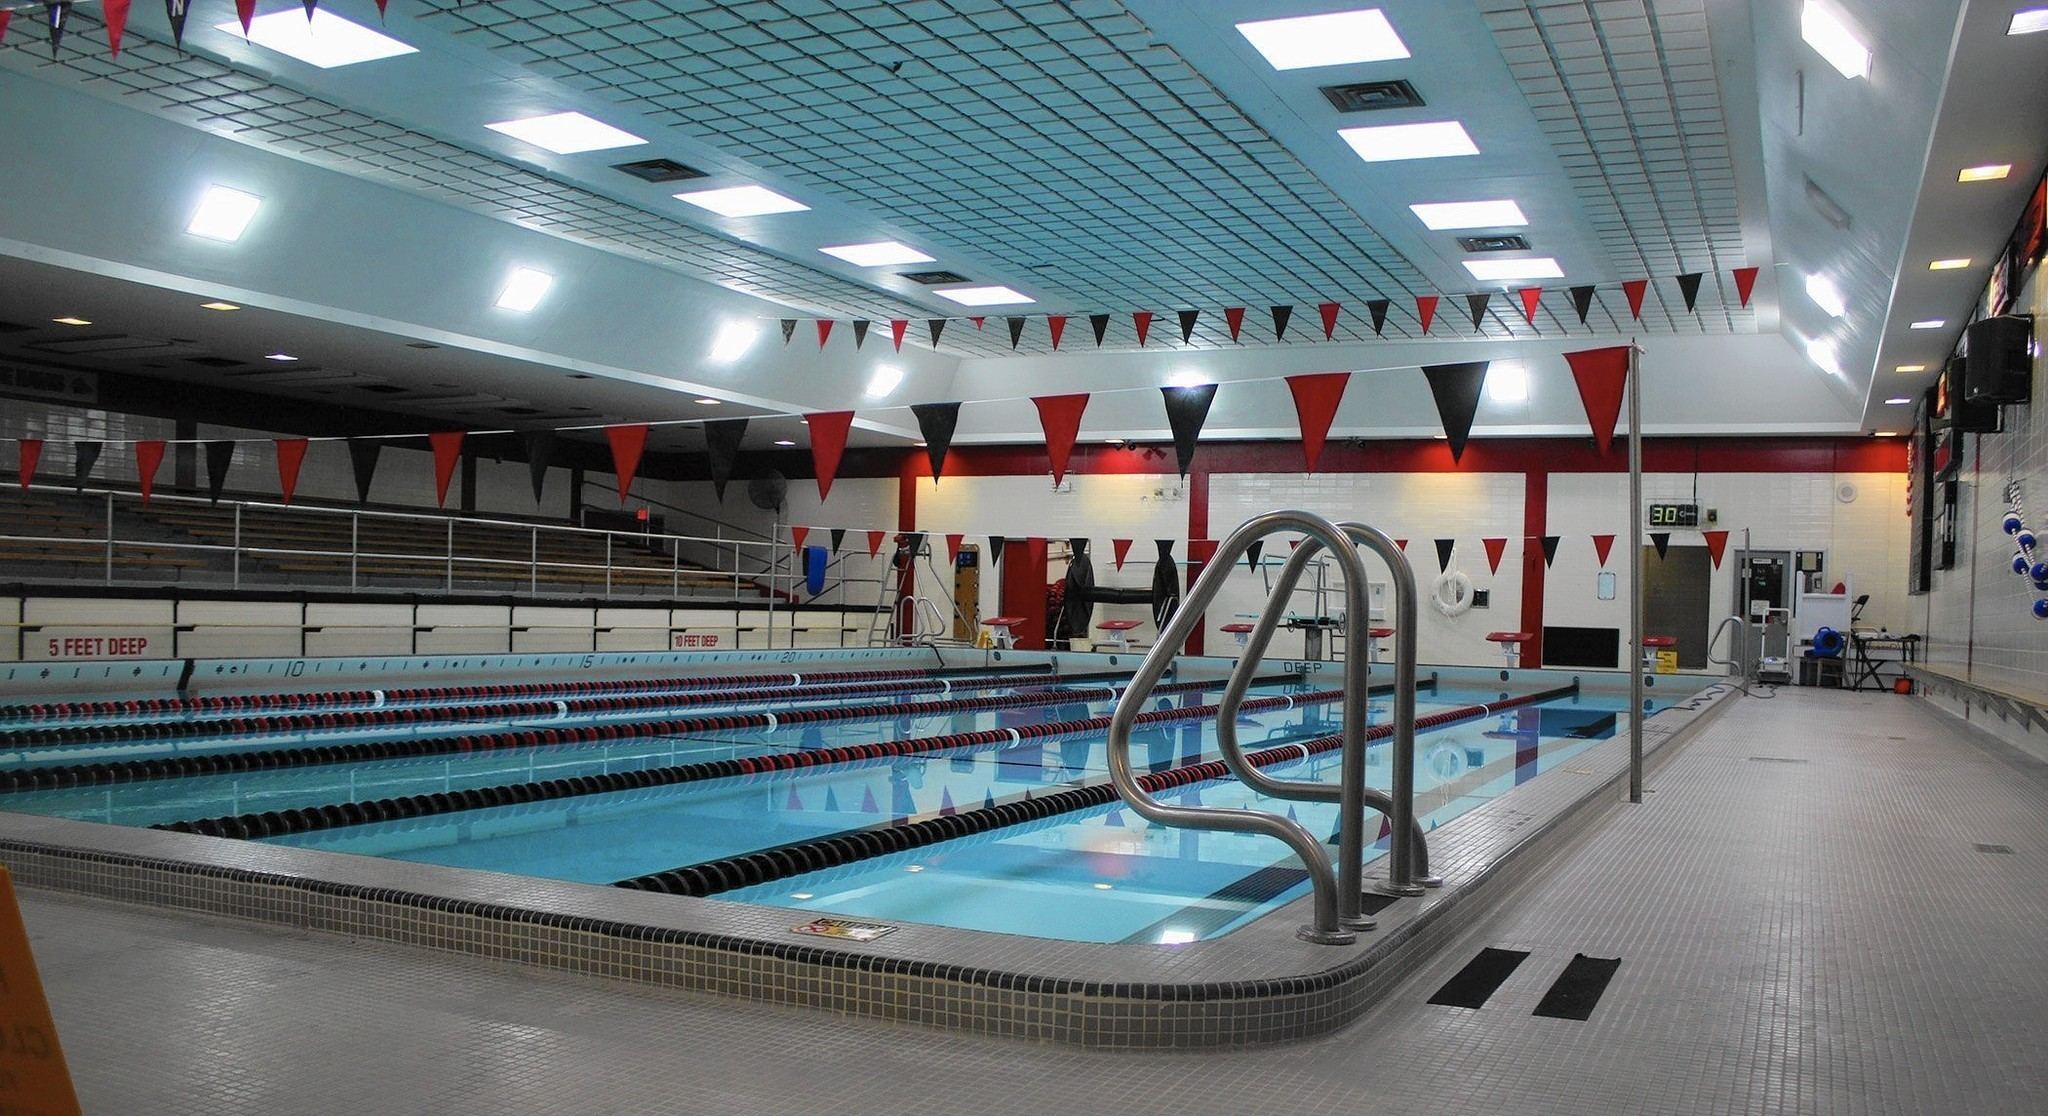 Indoor School Swimming Pool maine south boys swimmers raise health concerns about school pool